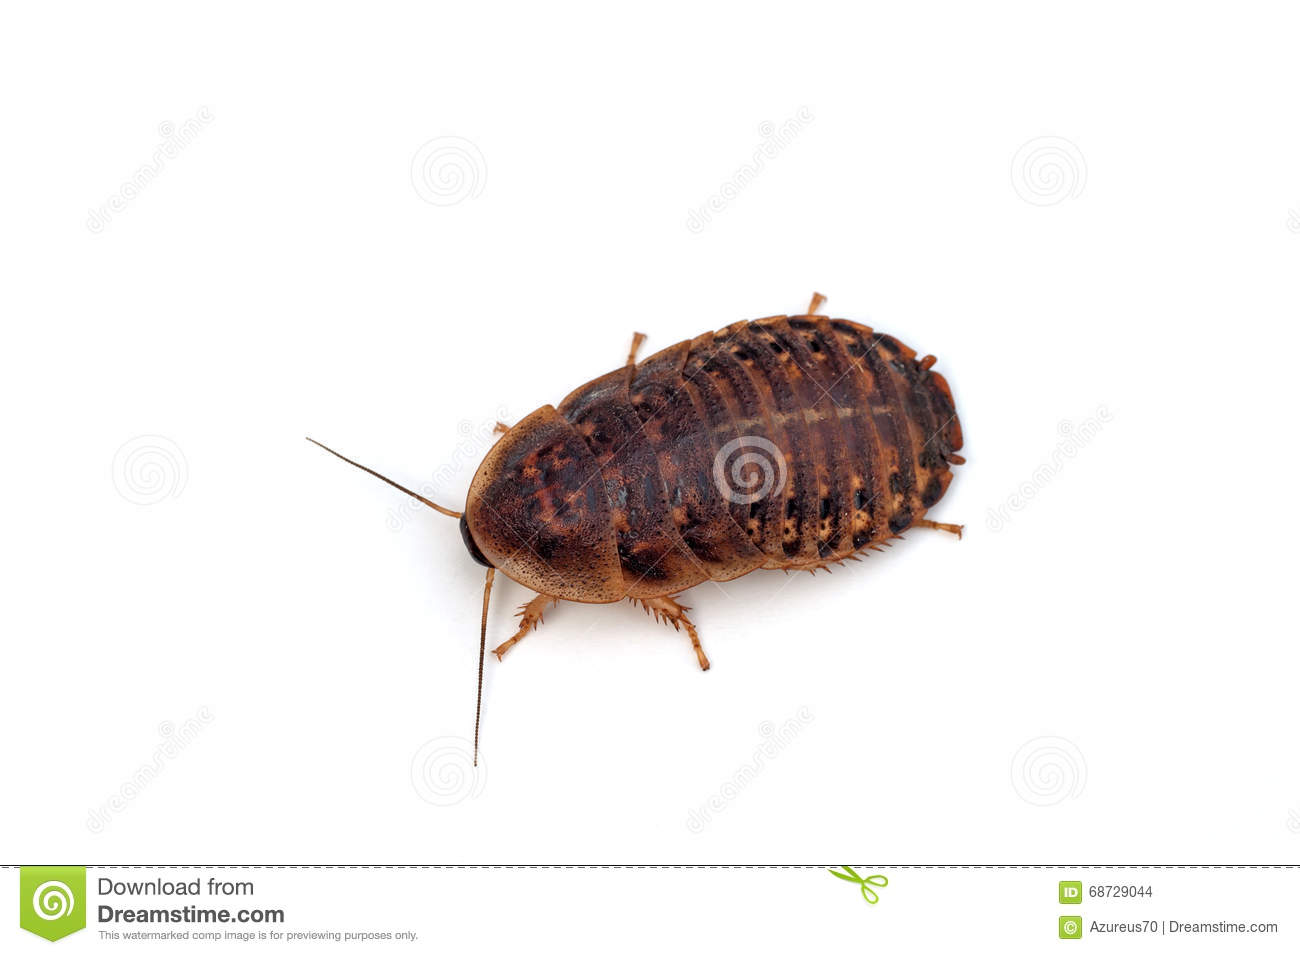 445 roach stock footage & videos are available royalty-free.